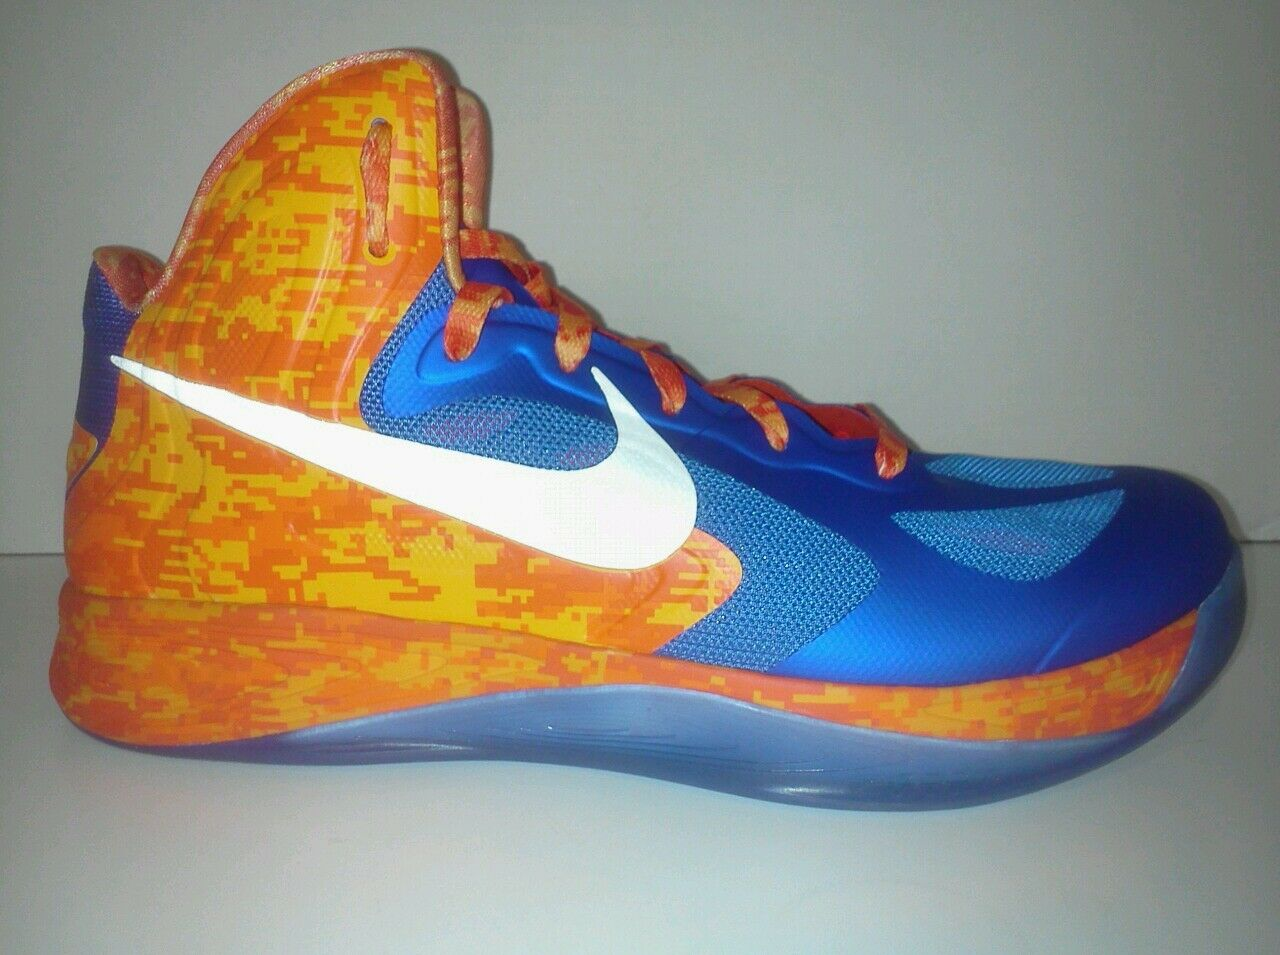 New Nike Hyperfuse Size 11